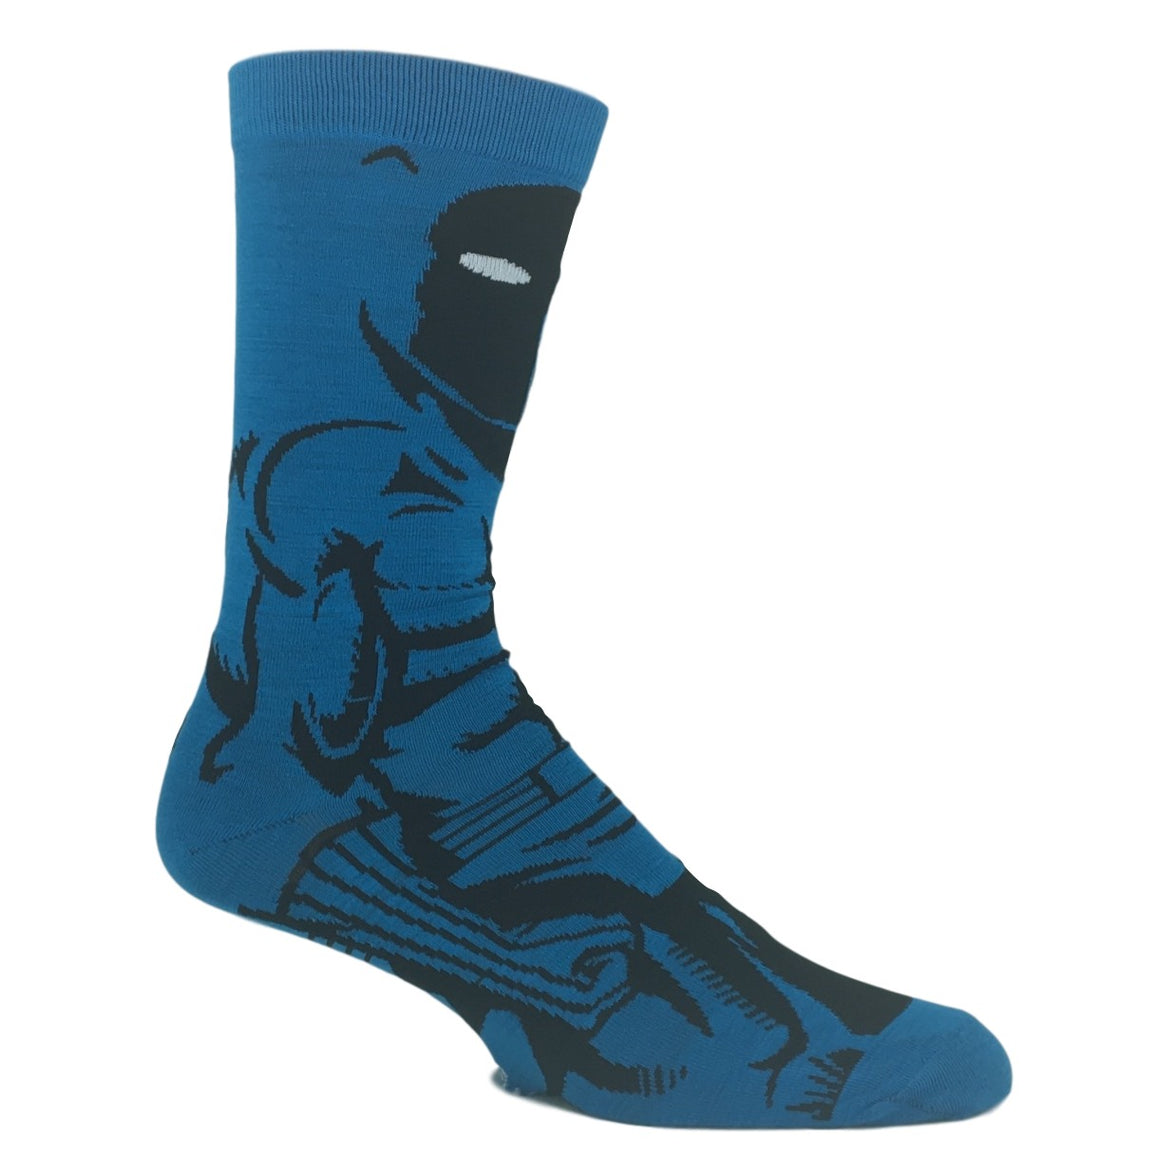 Socks - Marvel Black Panther 360 Socks